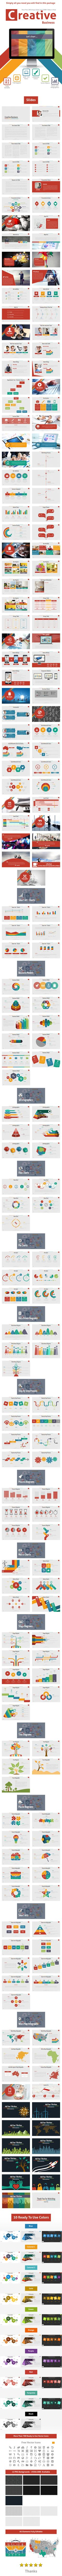 Creative business PowerPoint presentation template for multipurpose business Profile, Offer or Report… etc., you can use it for many sectors such as technology, finances or business. It contains resizable images, free fonts and (dark/gray/white) backgrounds.